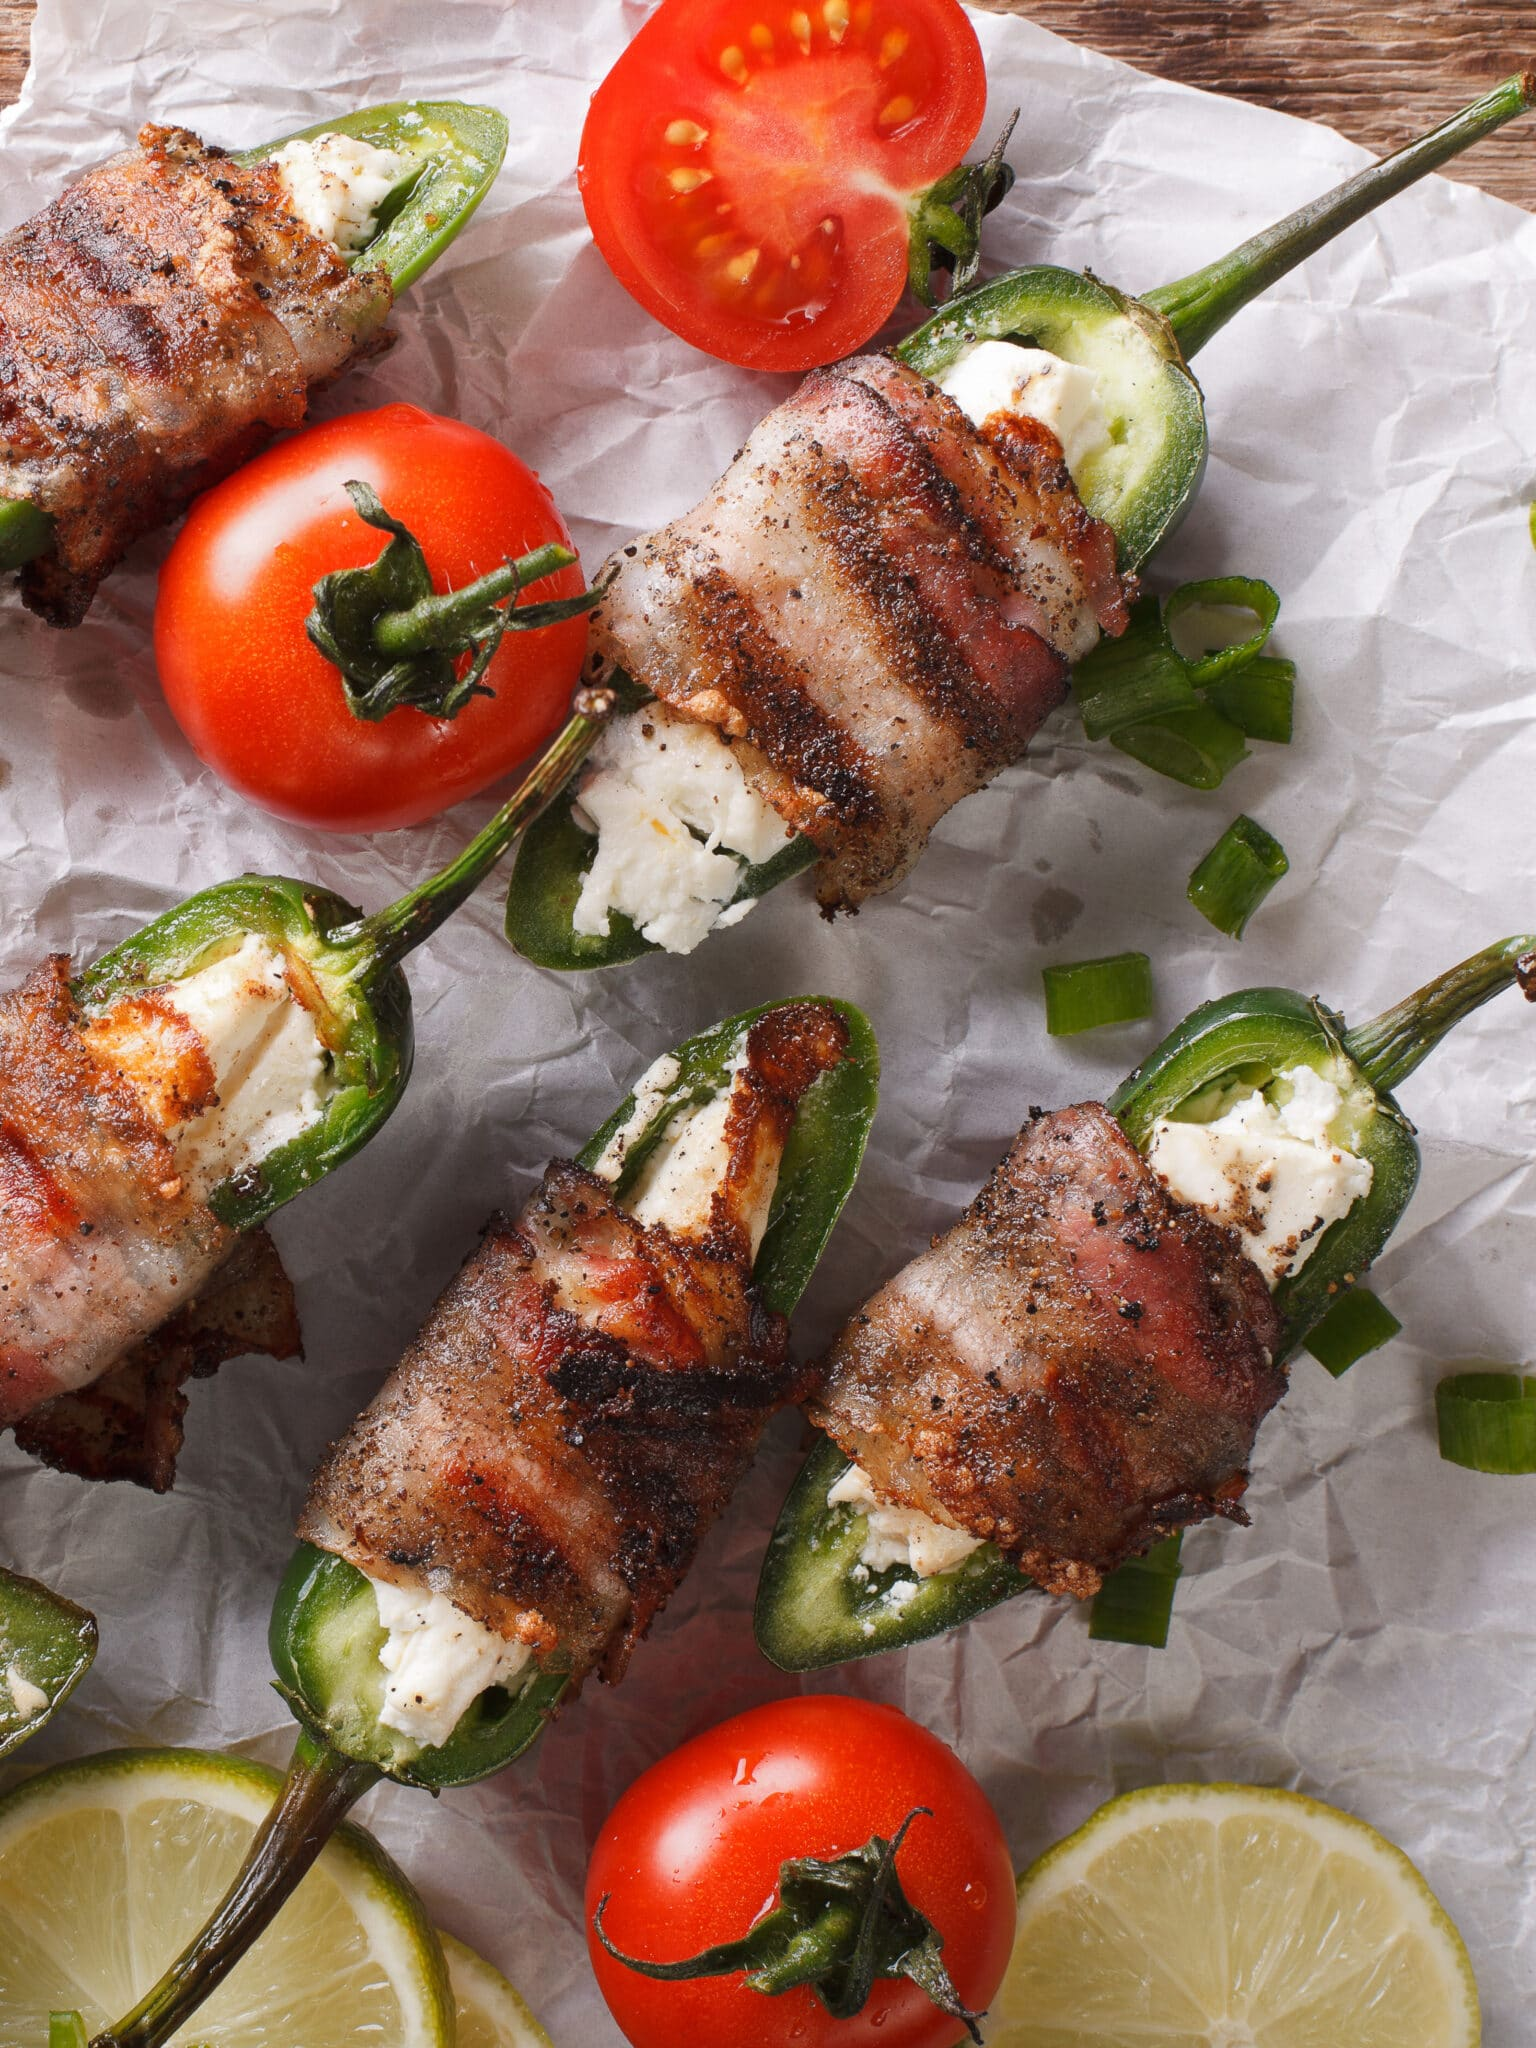 Creamcheese-filled jalapenos wrapped in bacon.